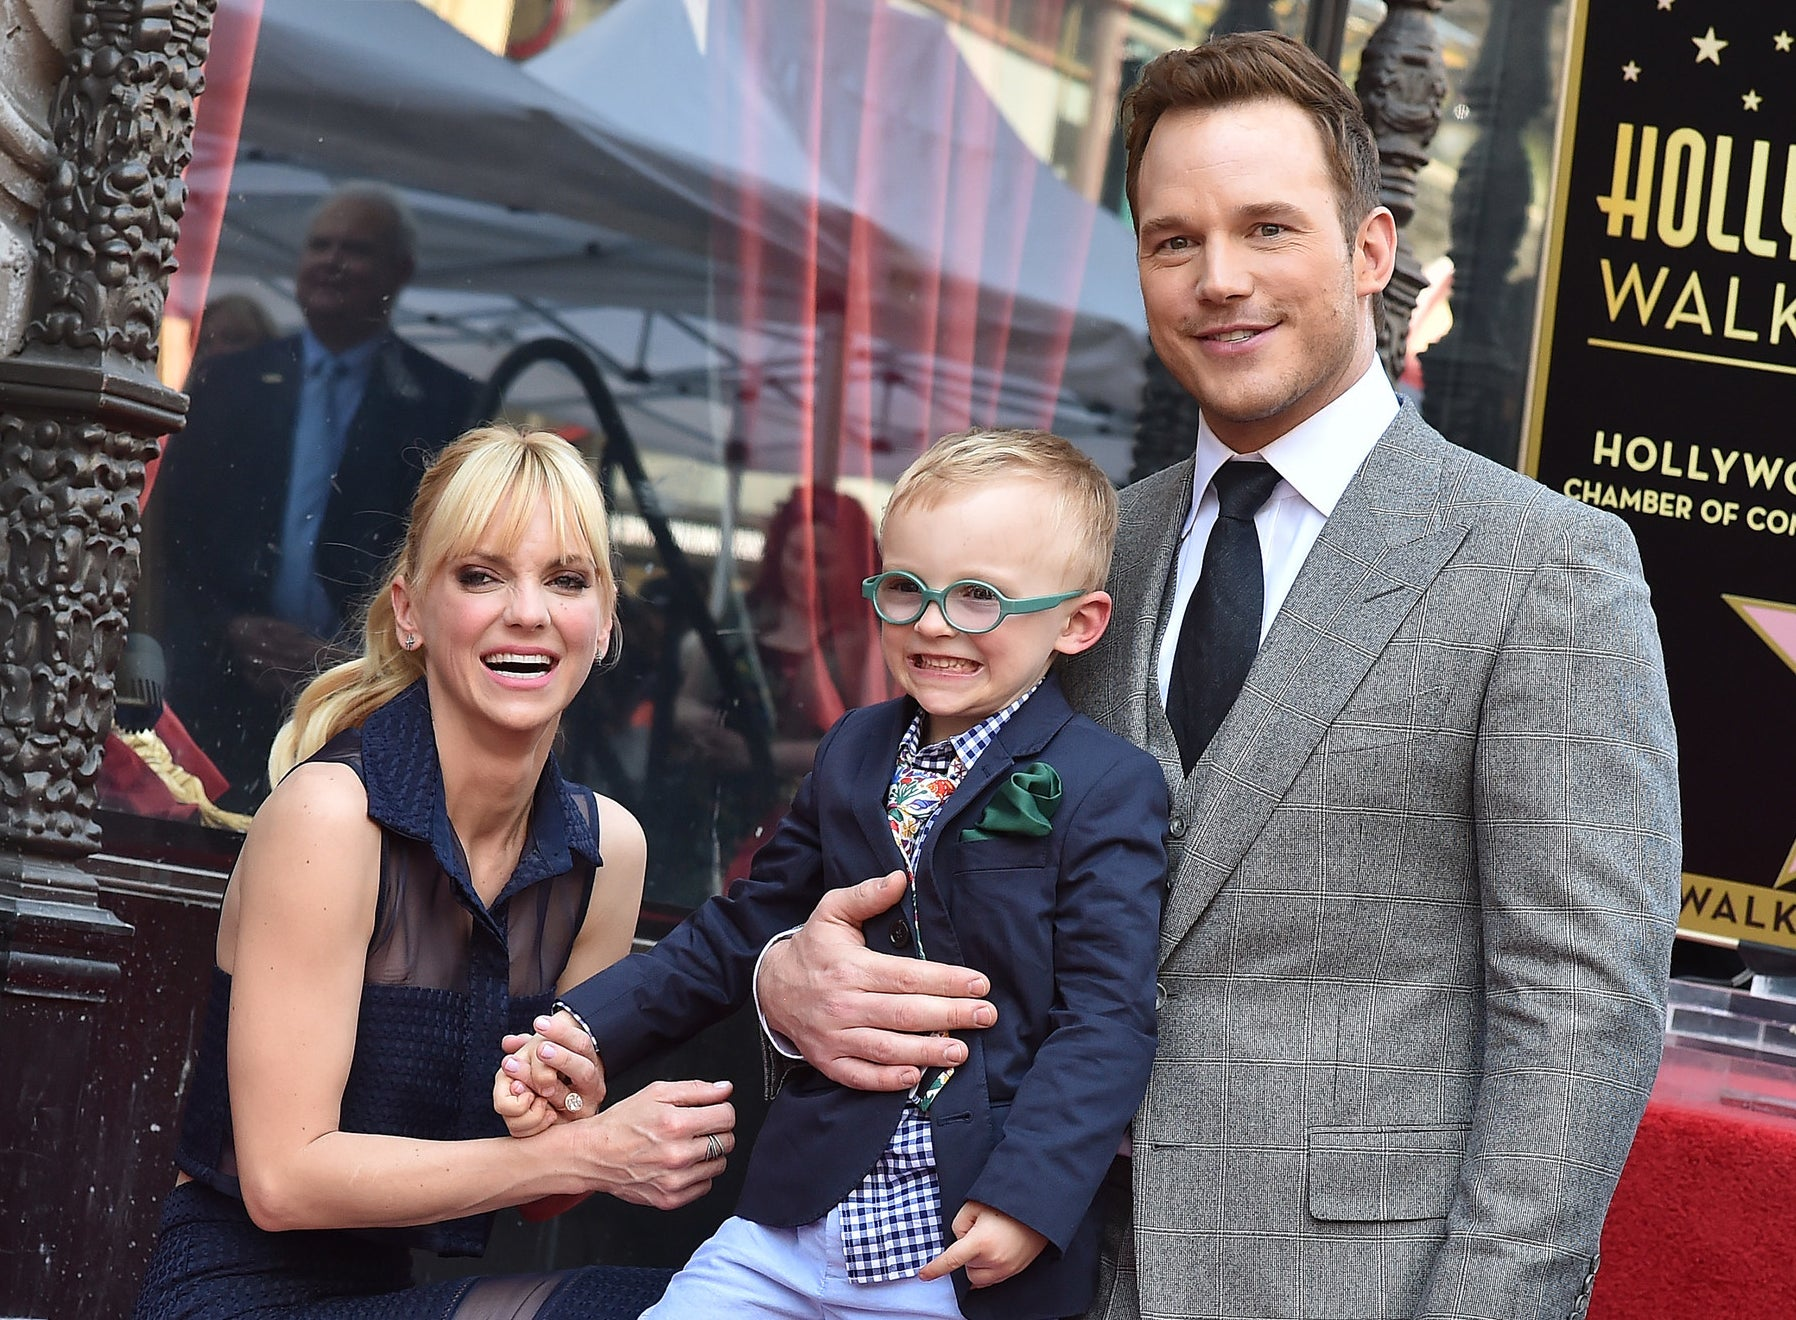 Chris and Anna hold hands with Jack at an event